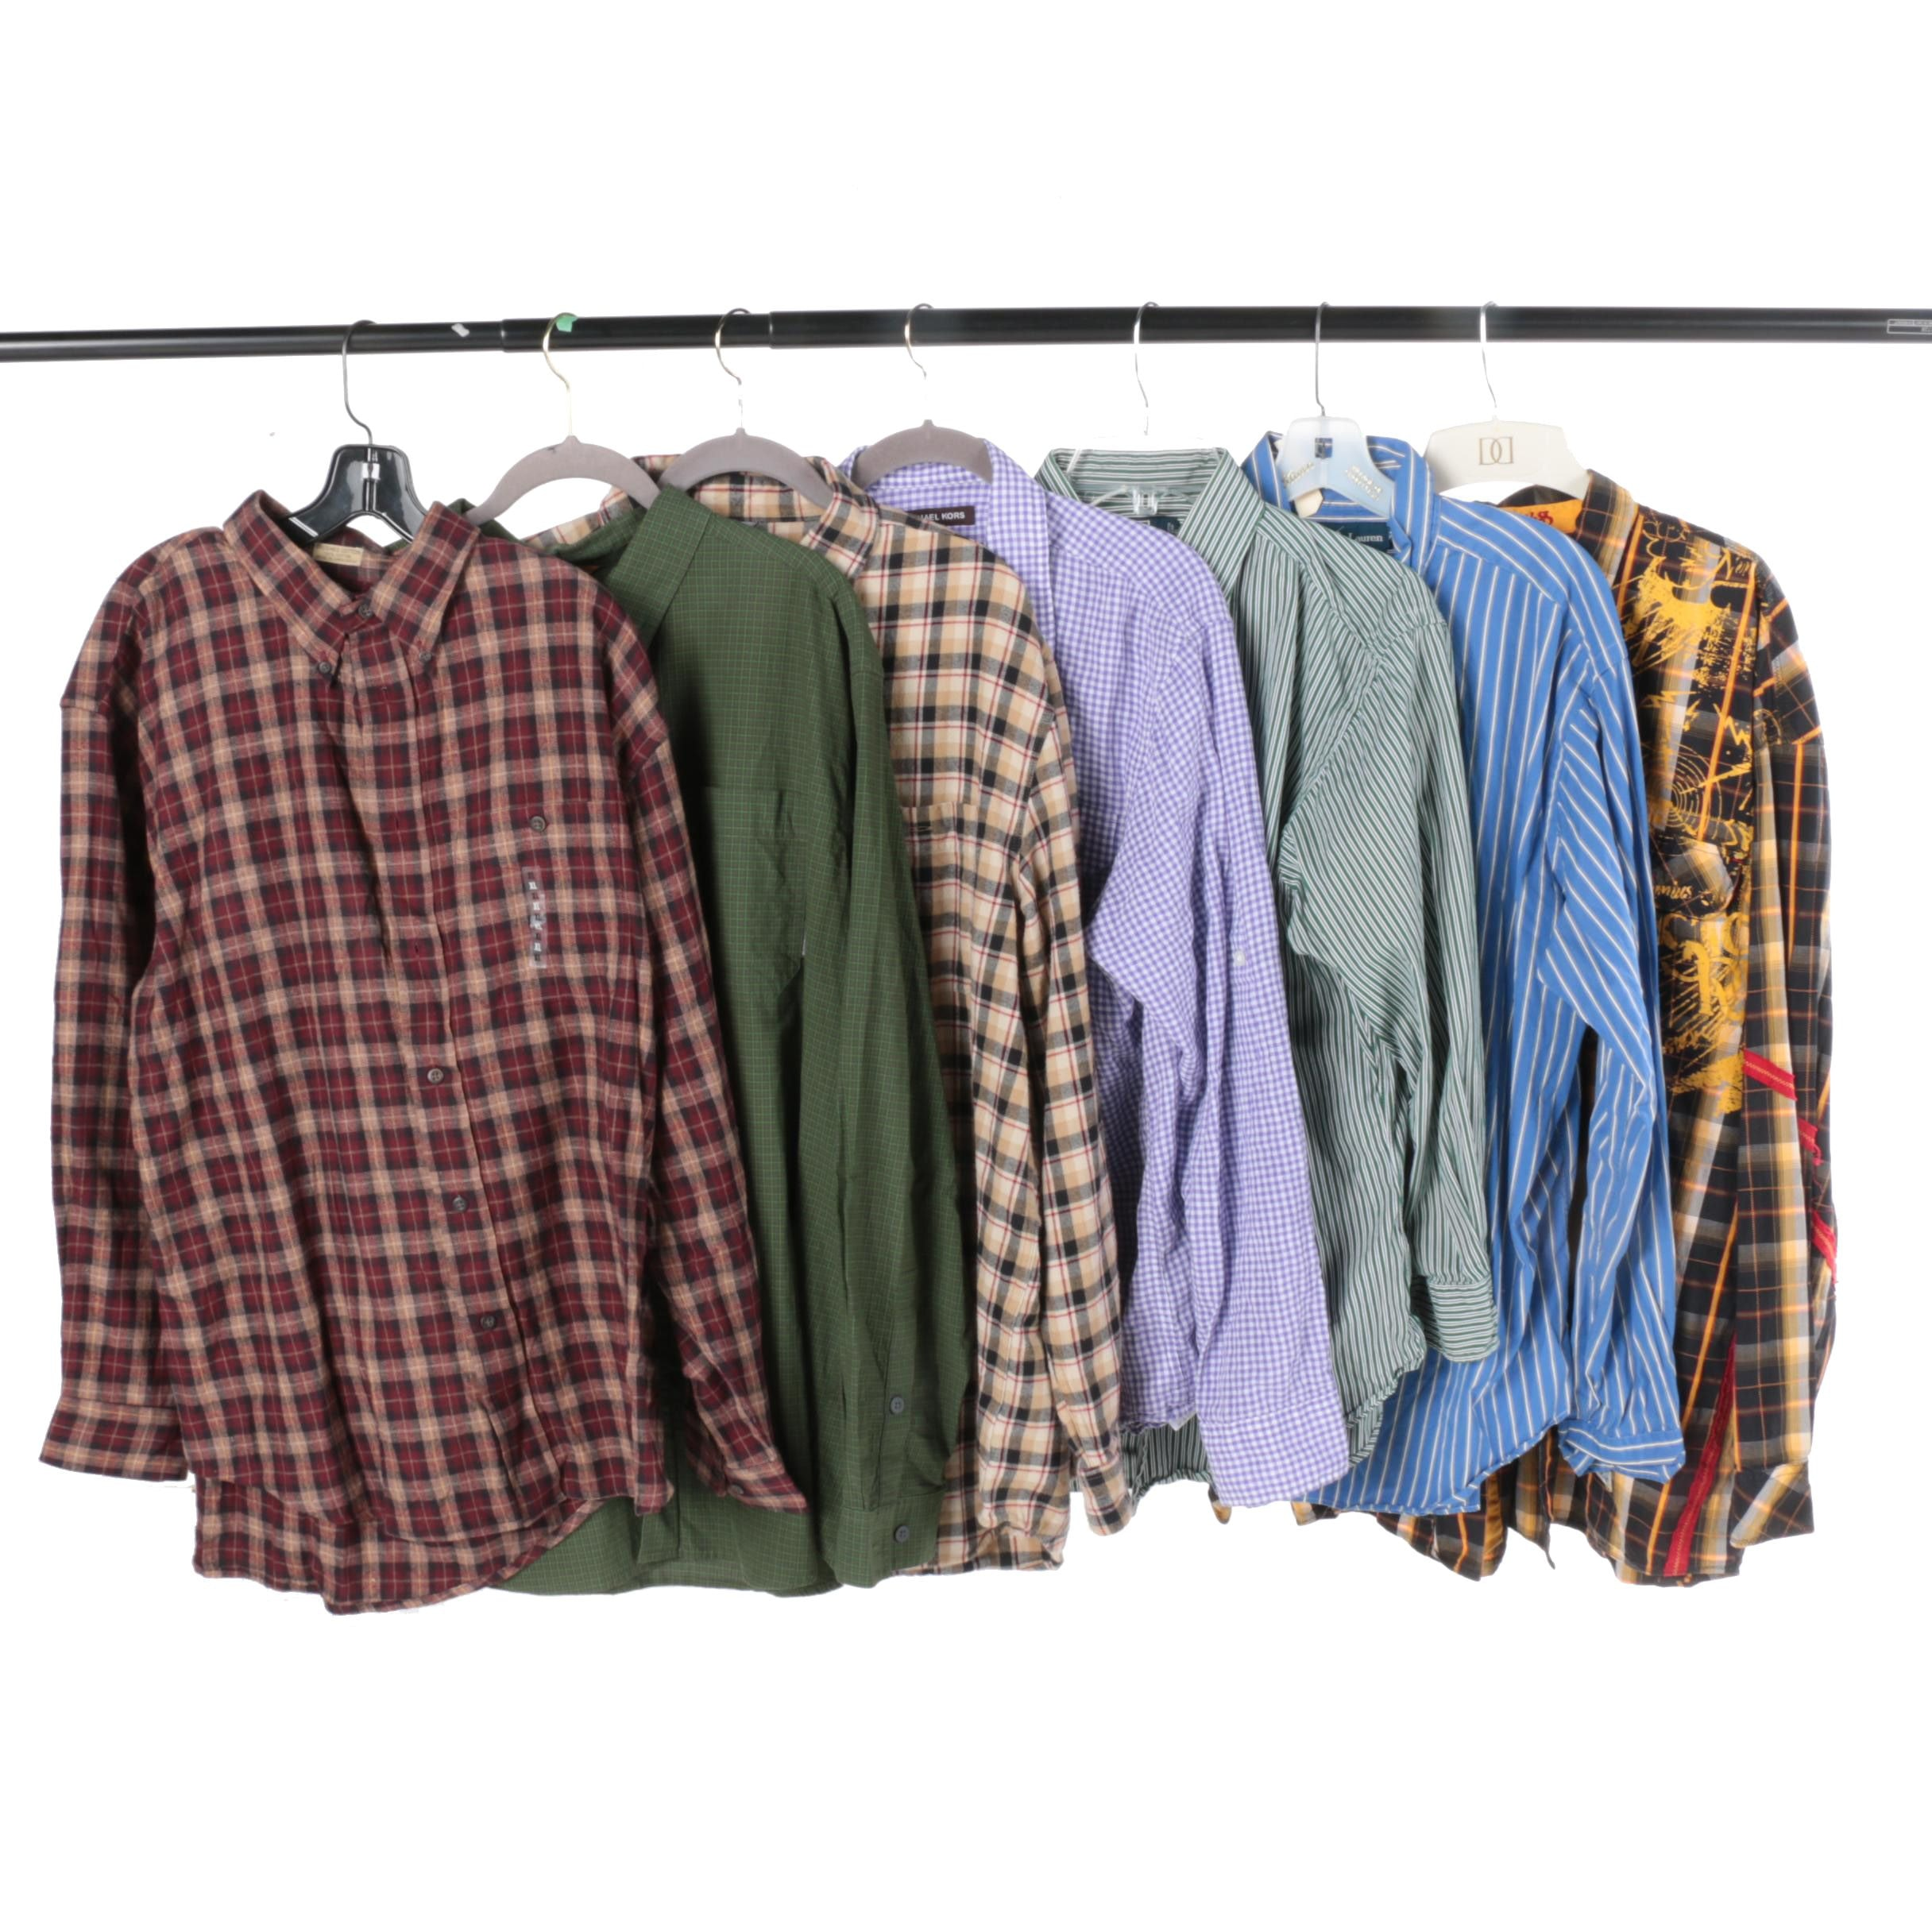 Men's Button-Down and Button-Up Shirts Including Ralph Lauren and Michael Kors